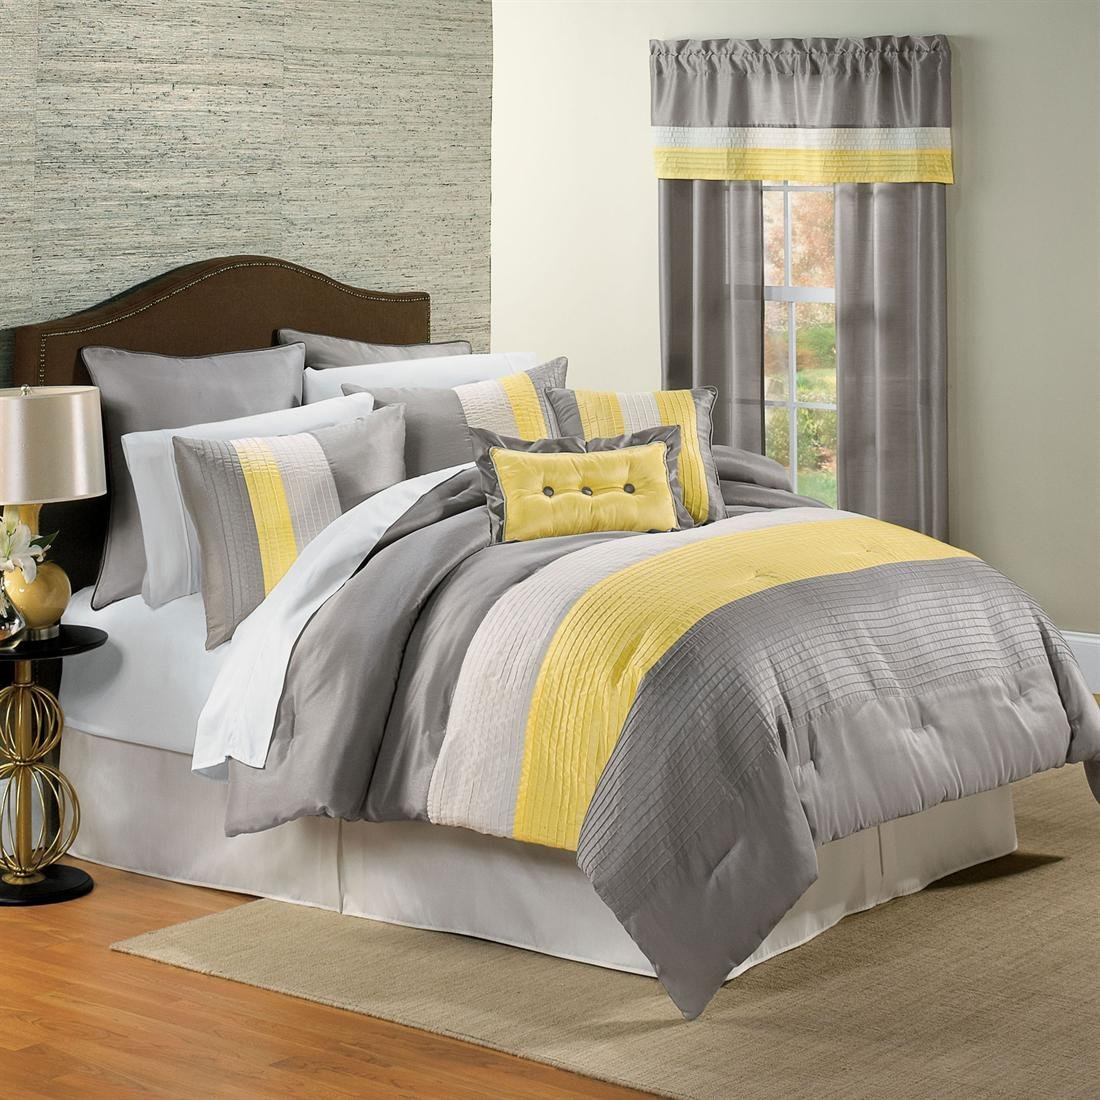 Grey king size bedding ideas homesfeed for Living room quilt cover